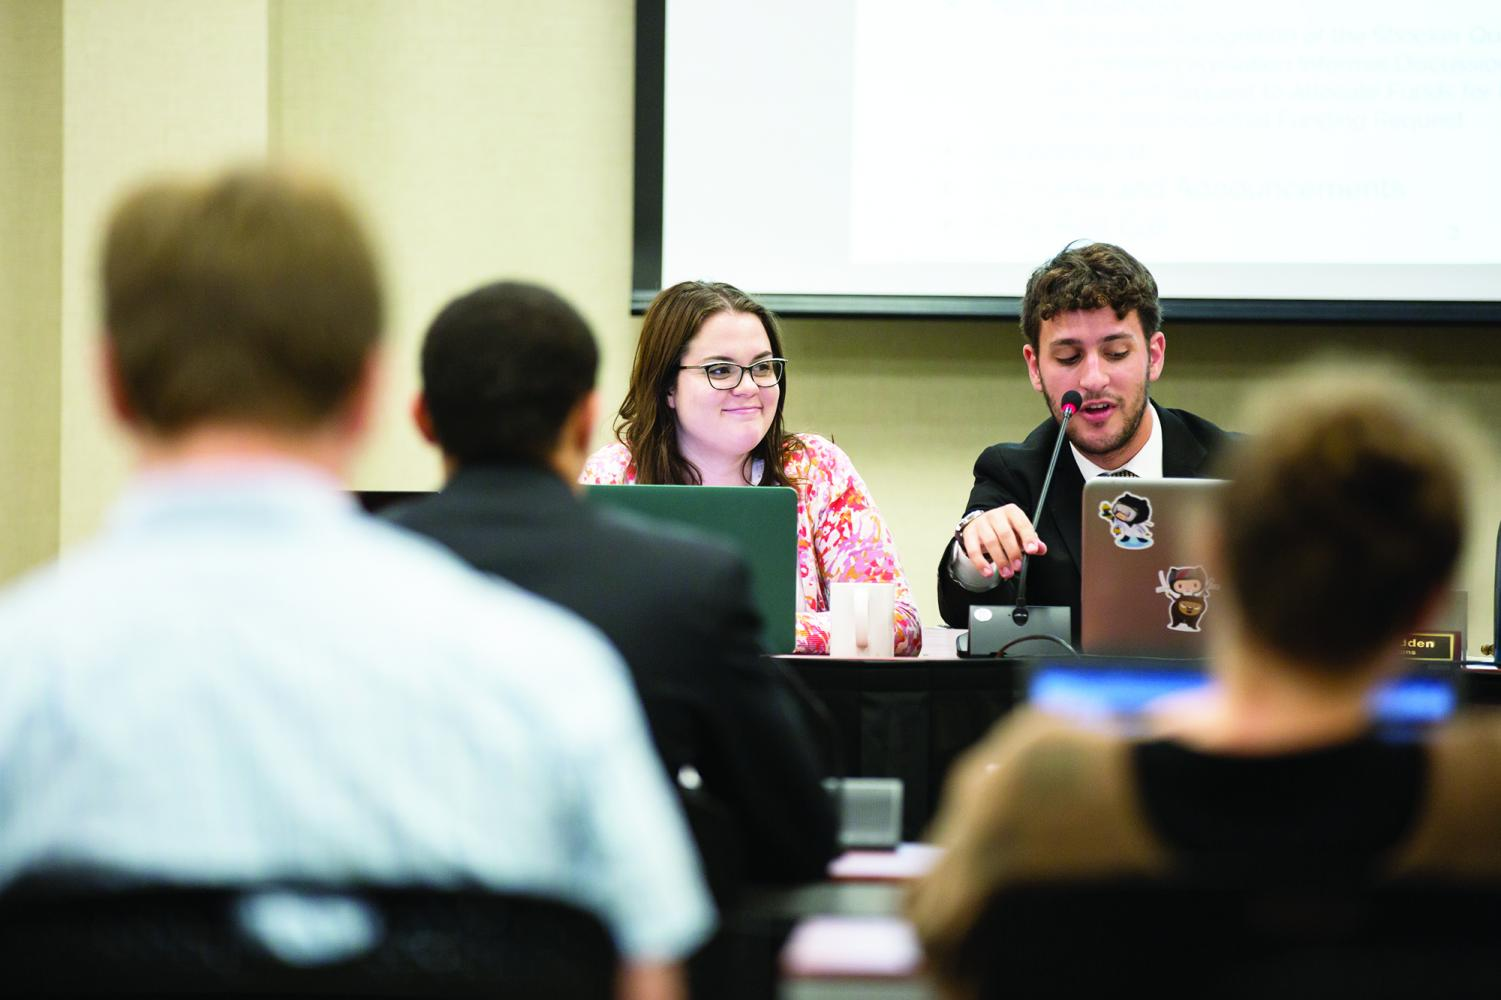 Student Body Vice President Shelby Rowell (left) and Chief of Operations Matthew Madden lead a Student Government meeting Wednesday evening. The Student Senate voted unanimously to allocate around $2,600 to buy three new laptops.